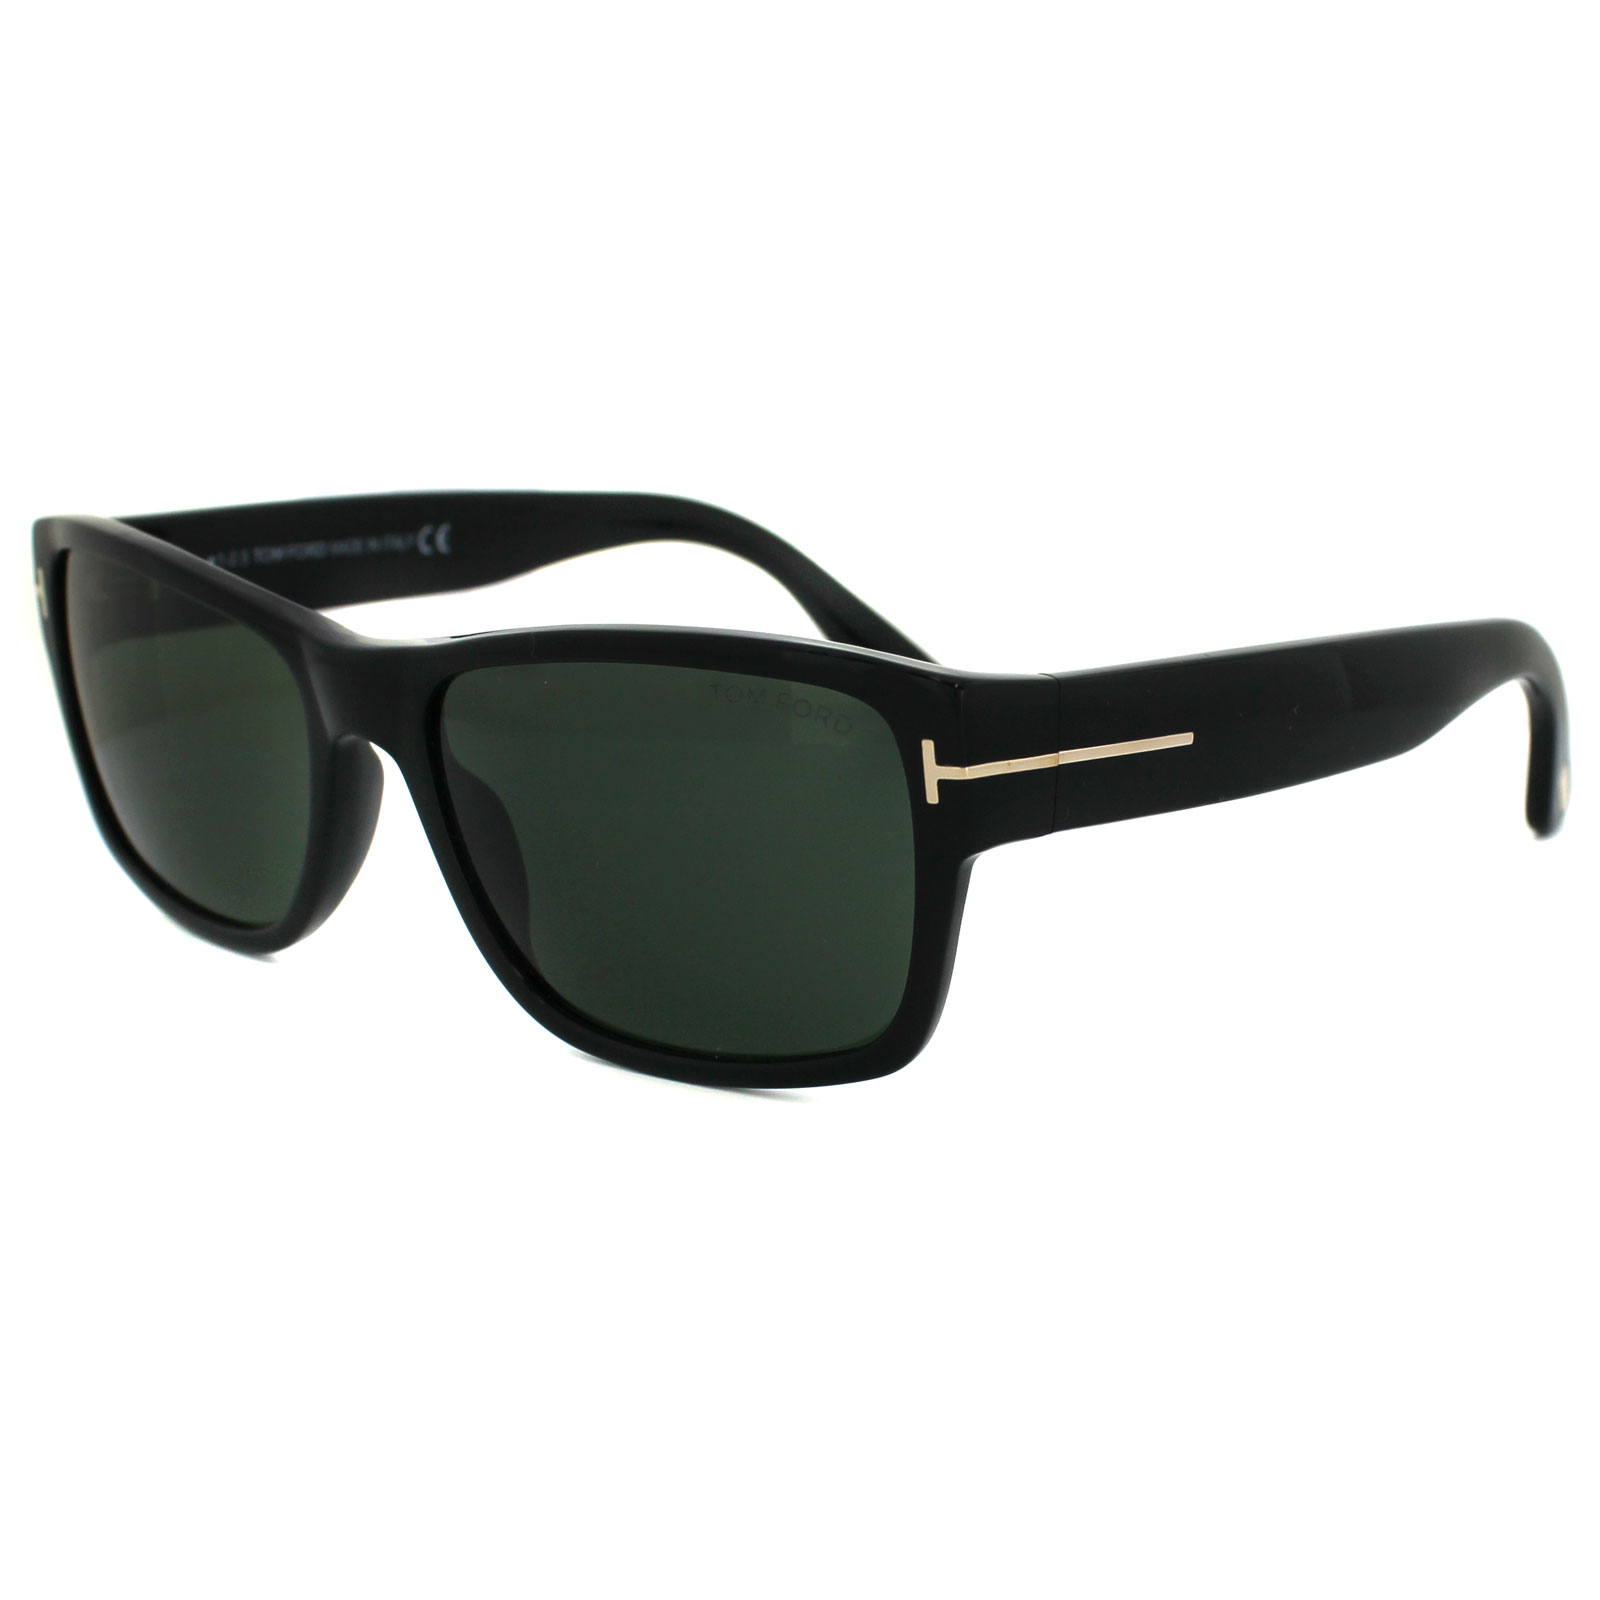 2a269b7a27 Cheap Tom Ford Sunglasses - Discounted Sunglasses